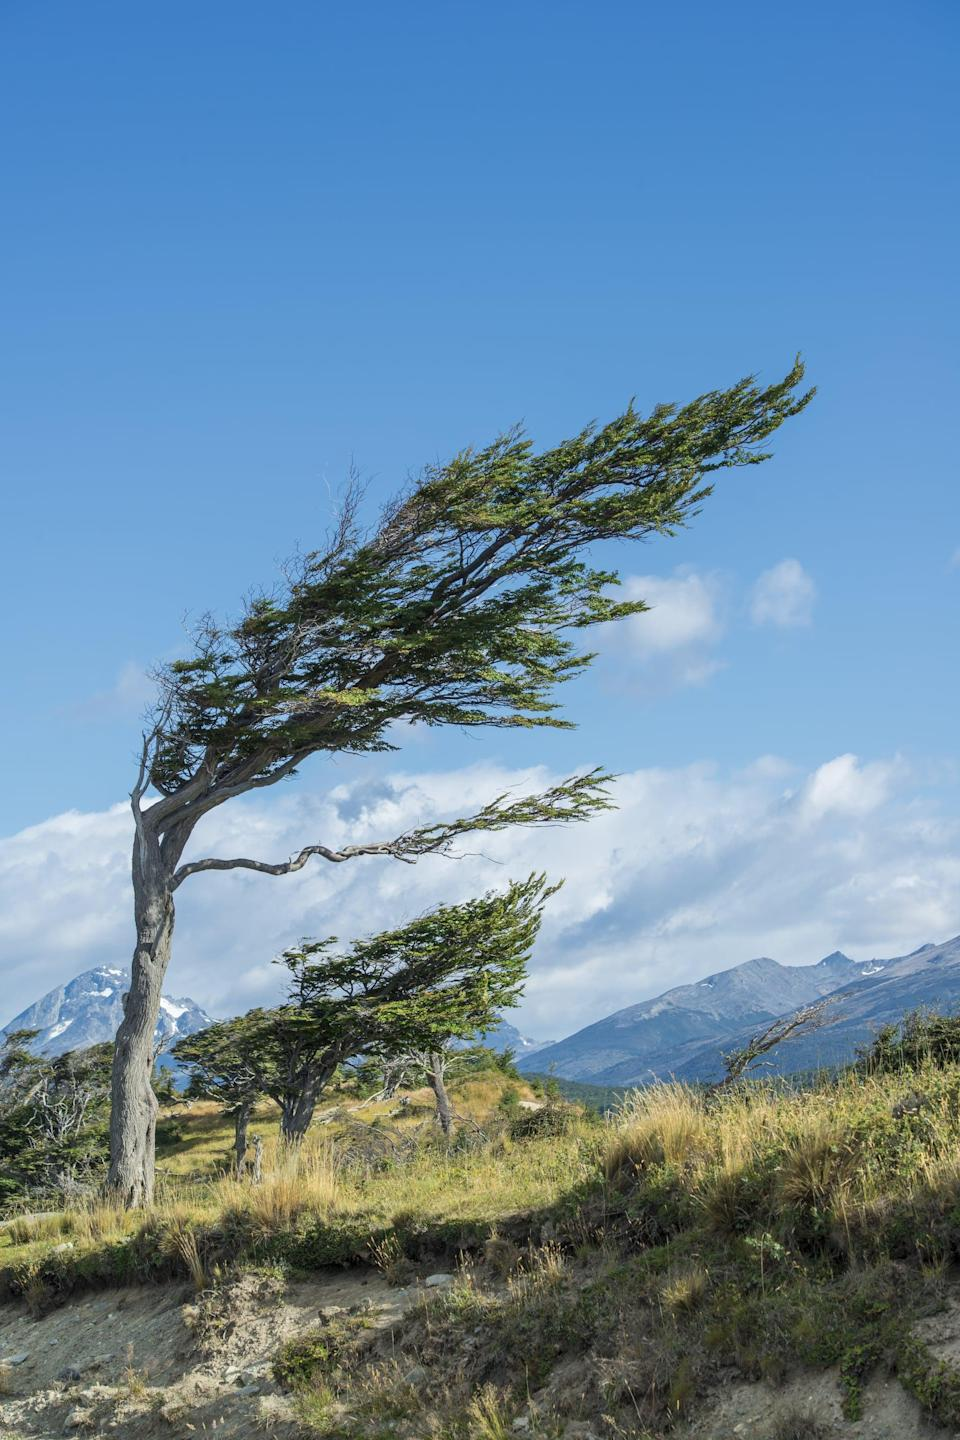 <p>An archipelago off the south of South America, Tierra del Fuego has plenty of natural wonders for tourists to gawk at, including glaciers, forests, and mountains. Some of the island's trees grow horizontally because of the strong gusts of wind from the Antarctic, and they are a sight to see. </p>